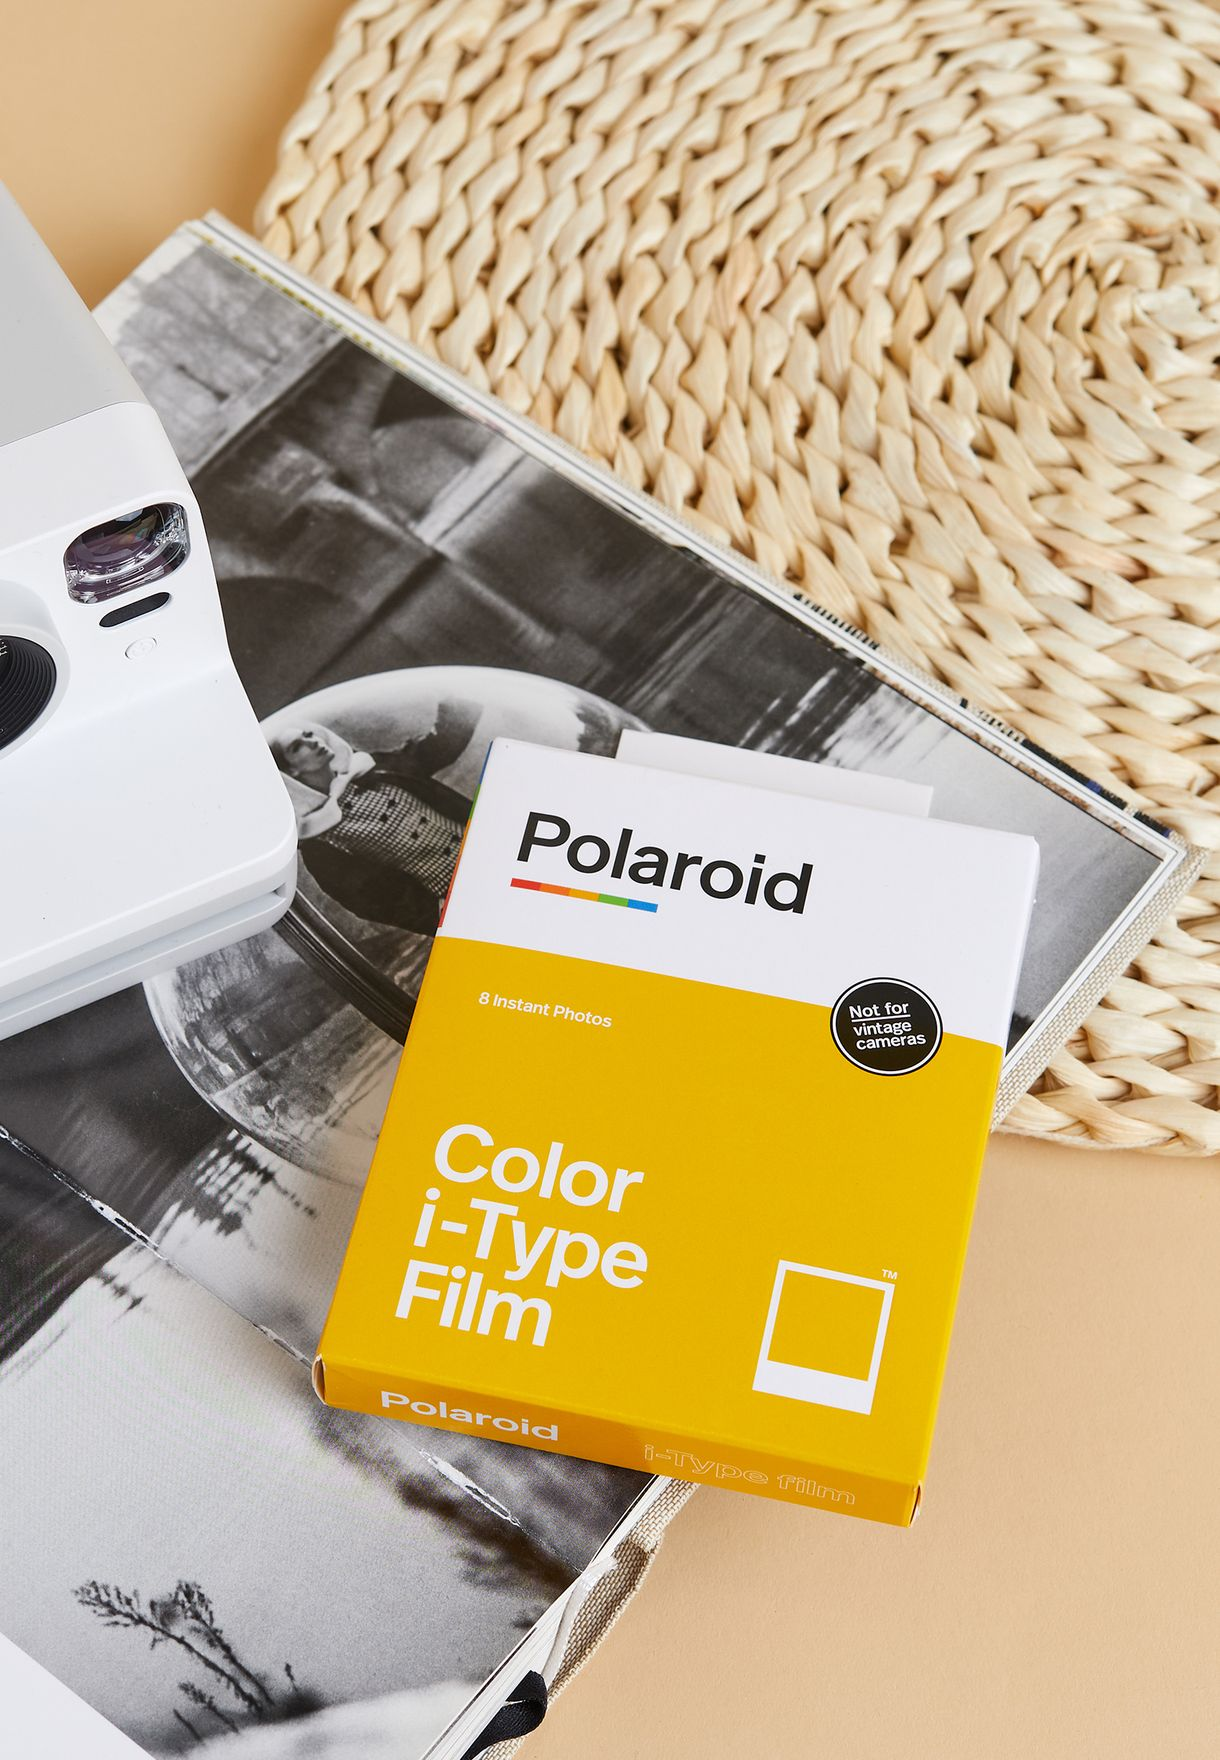 Polaroid Color Film for i-Type Camera